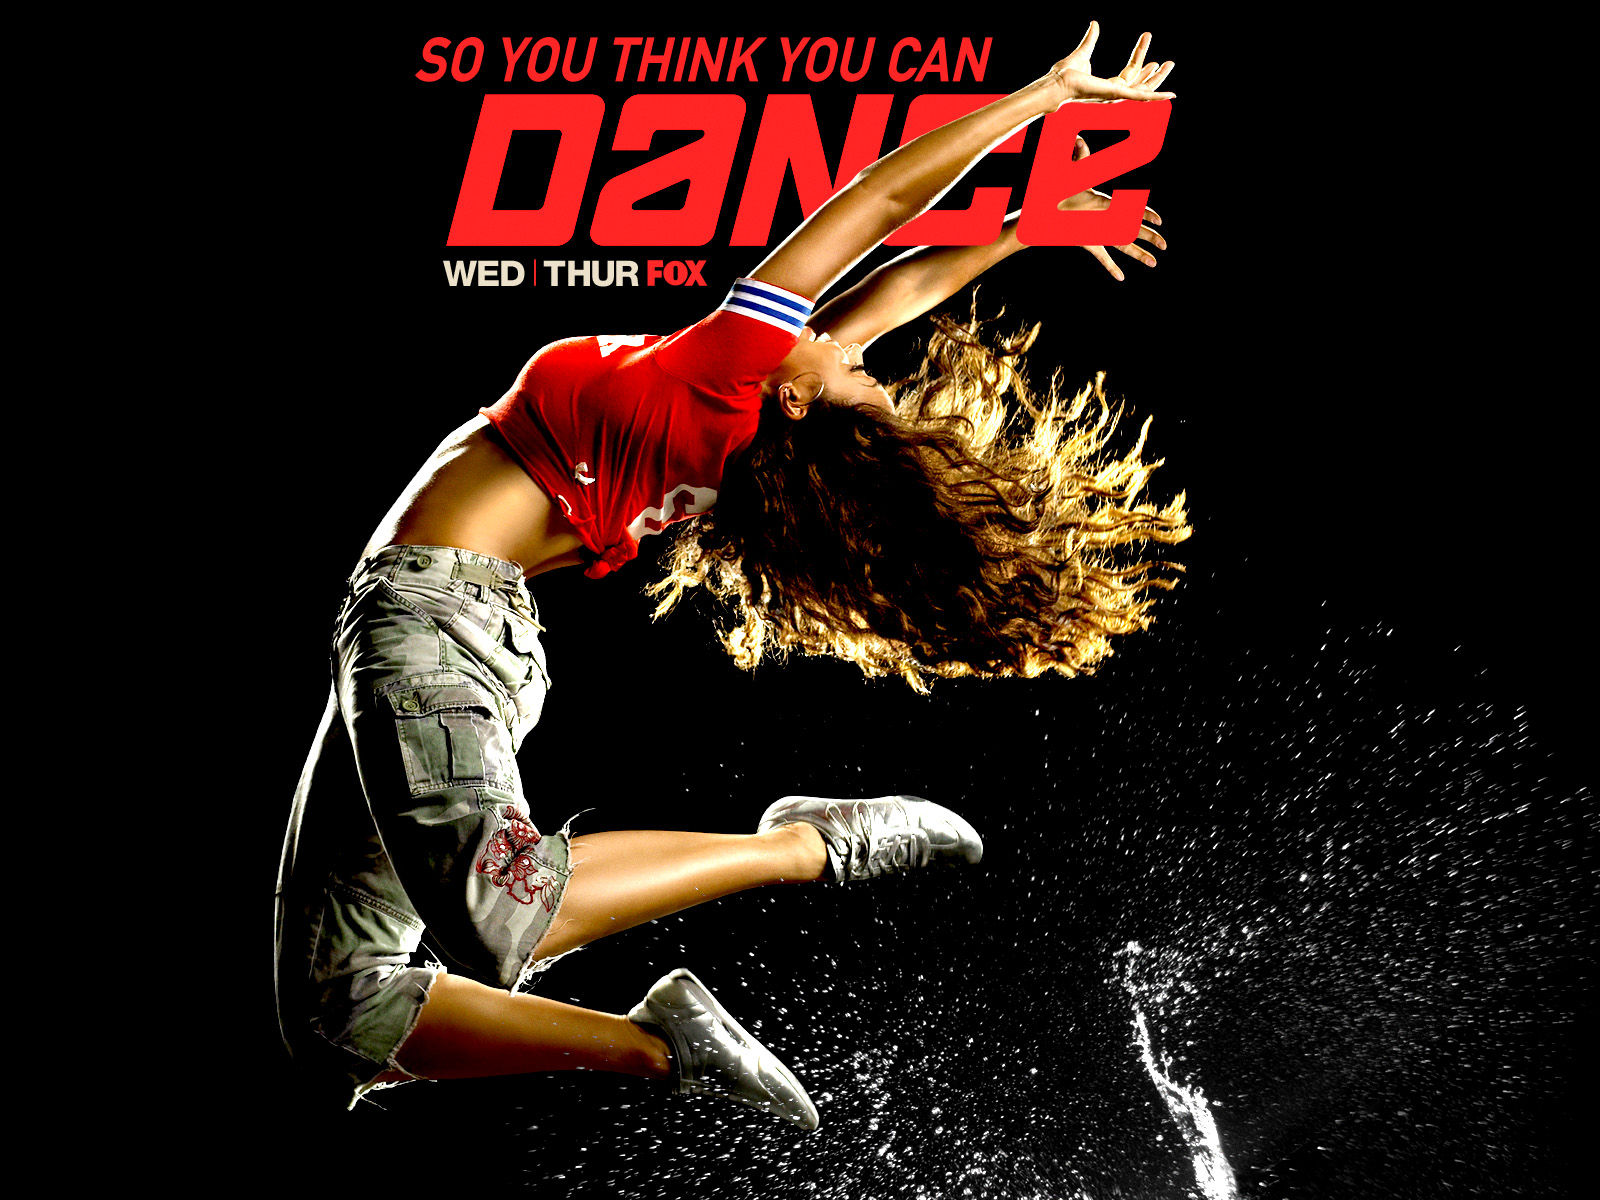 So You Think You Can Dance Wallpapers Tv Show Hq So You Think You Can Dance Pictures 4k Wallpapers 2019